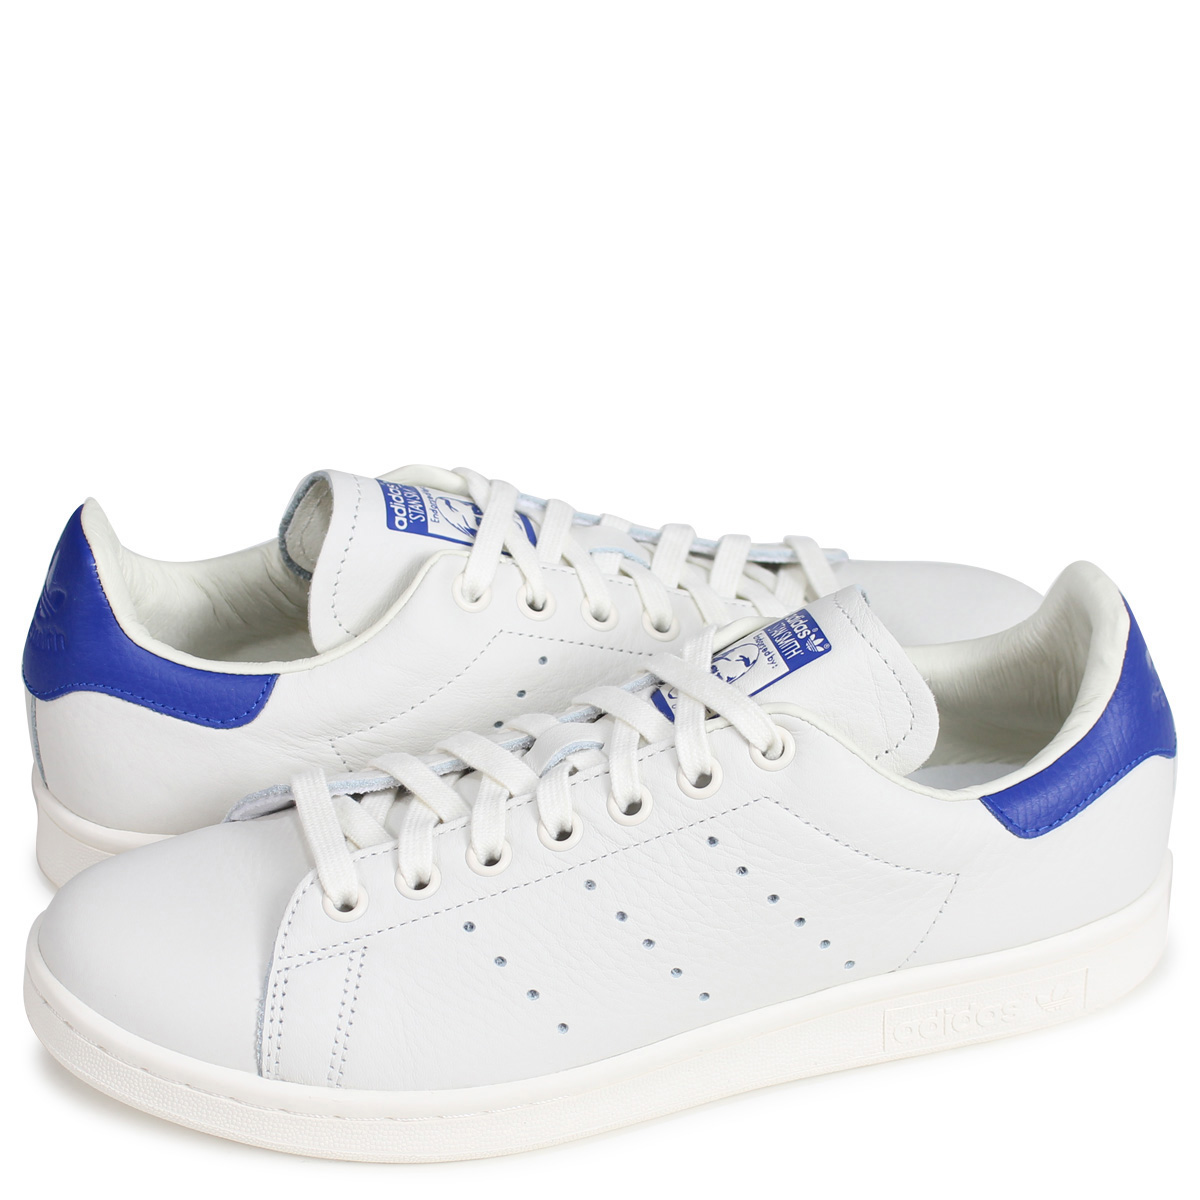 super popular 37d25 11402 adidas Originals STAN SMITH Adidas originals Stan Smith sneakers men gap  Dis B37899 white  load planned Shinnyu load in reservation product 7 7  containing  ...